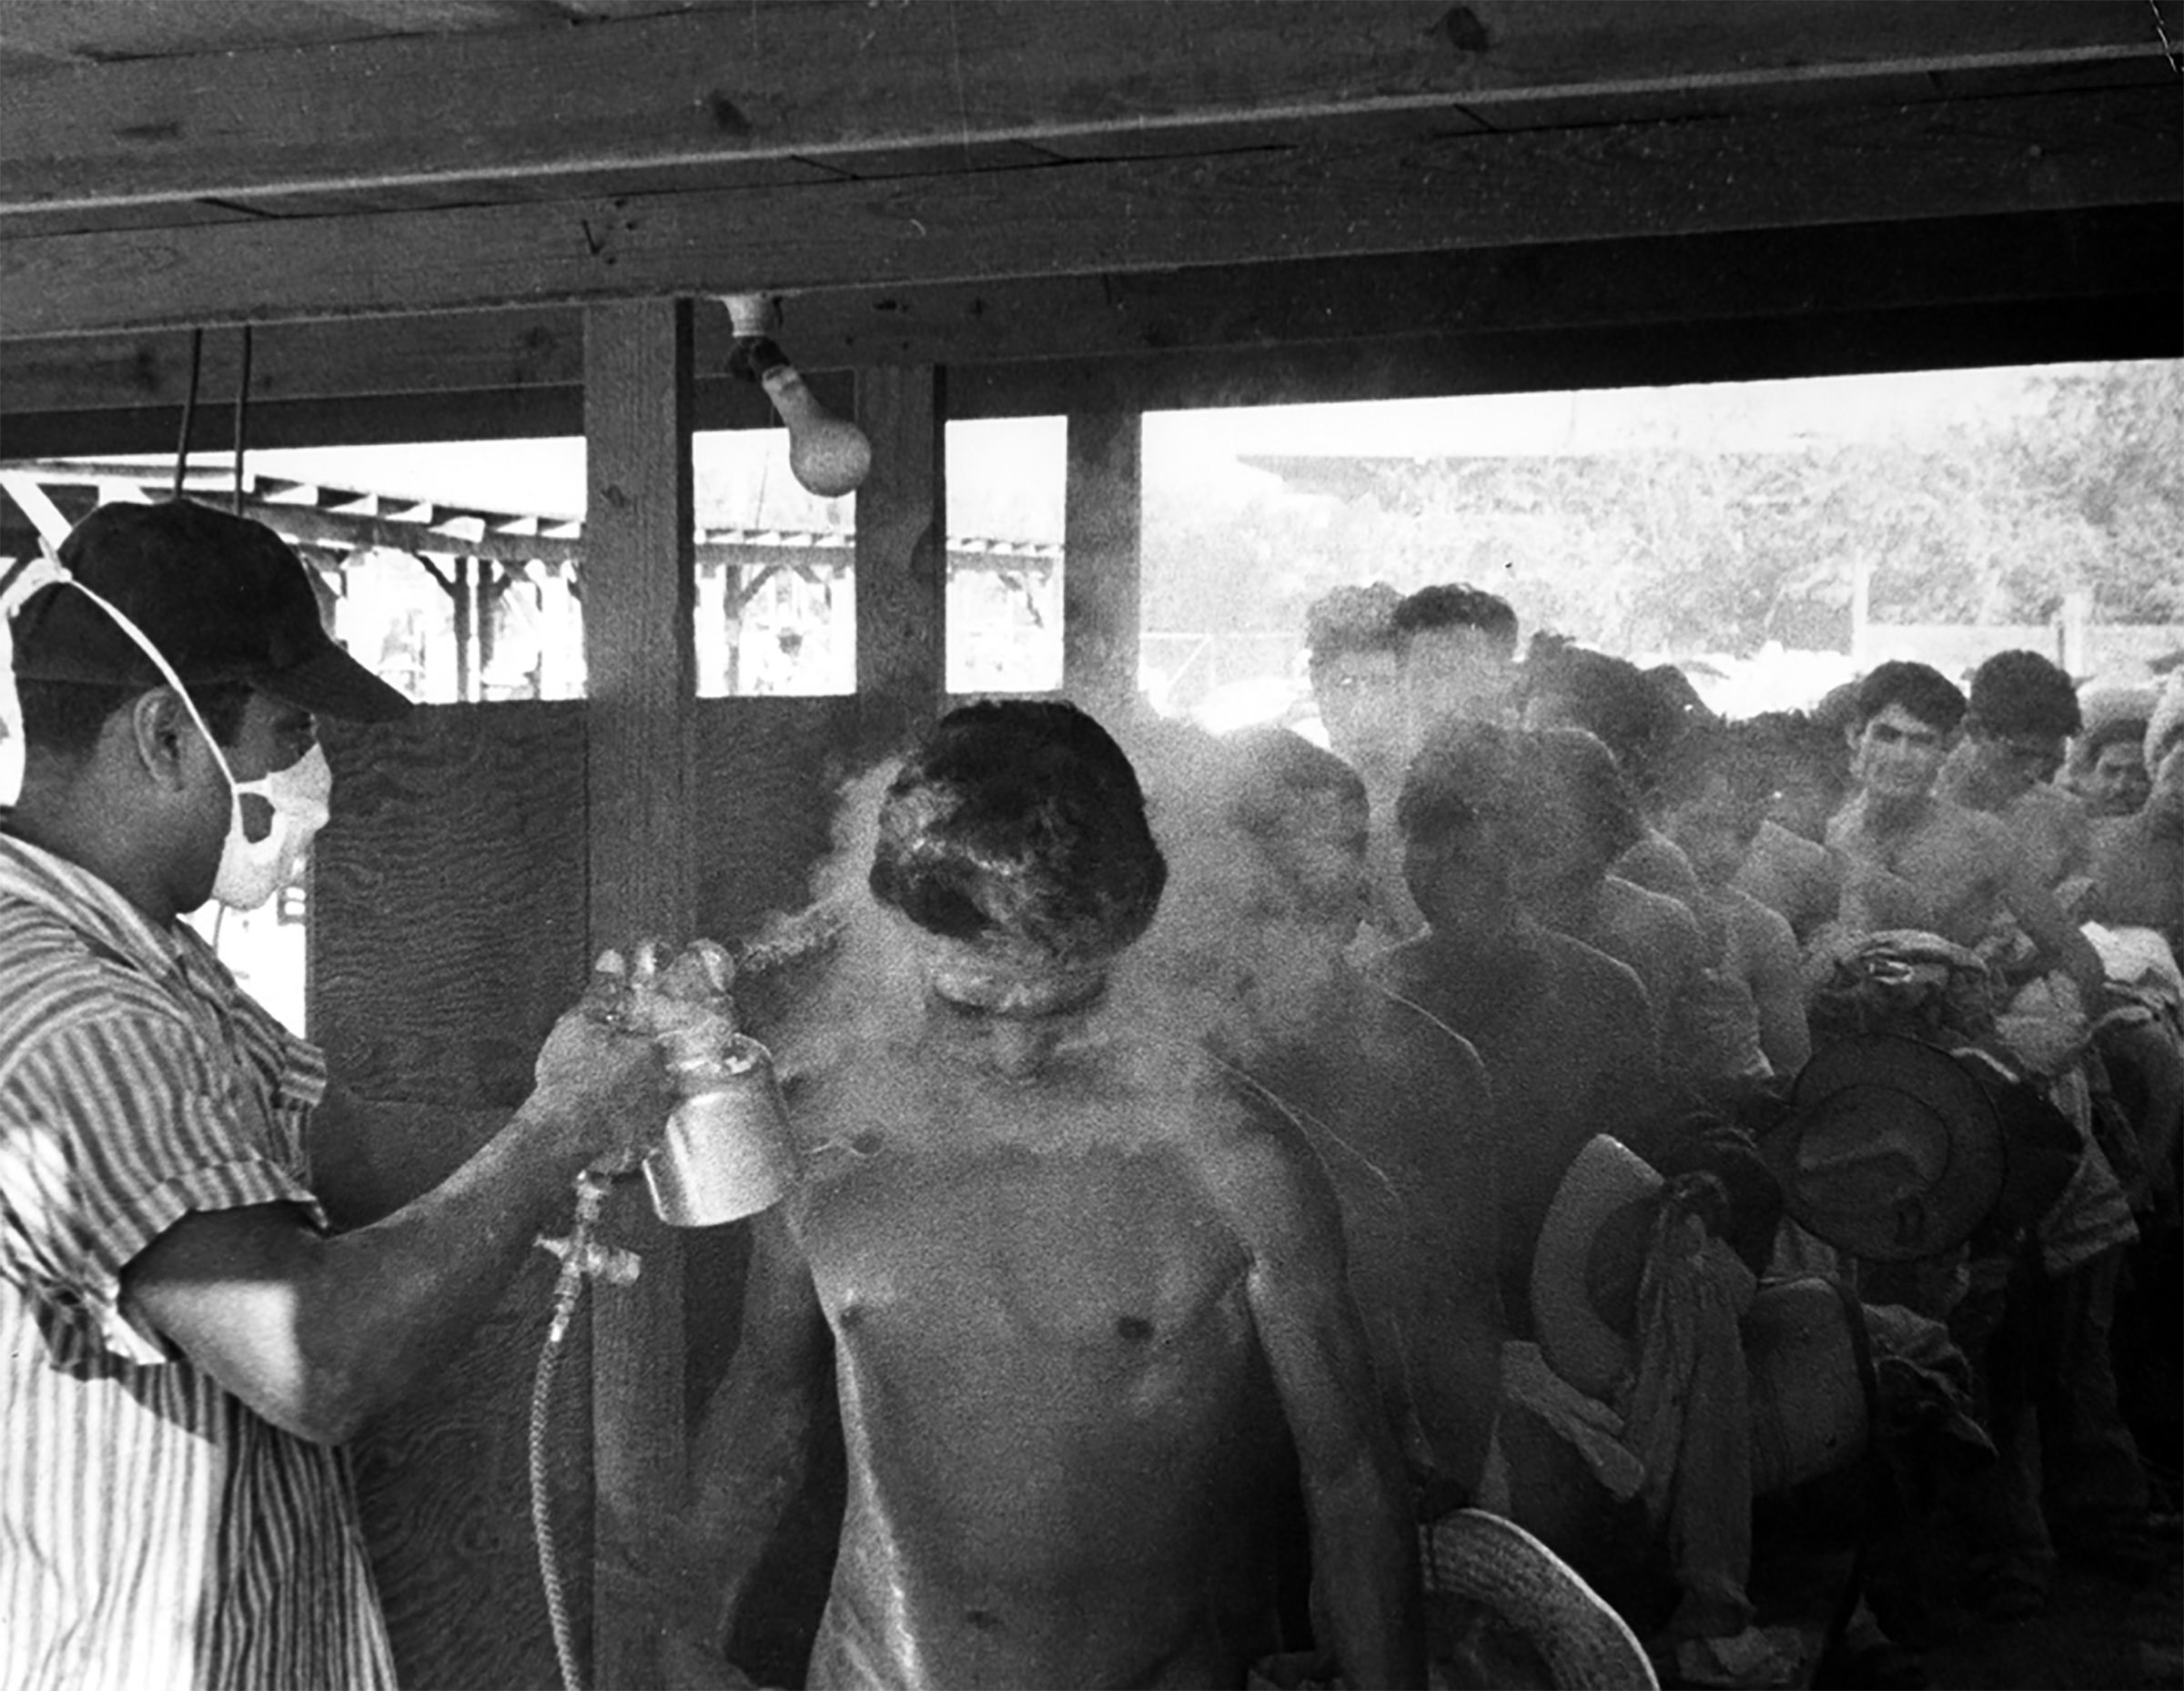 Contract Mexican laborers being fumigated with the pesticide DDT in Hidalgo, Texas in 1956.